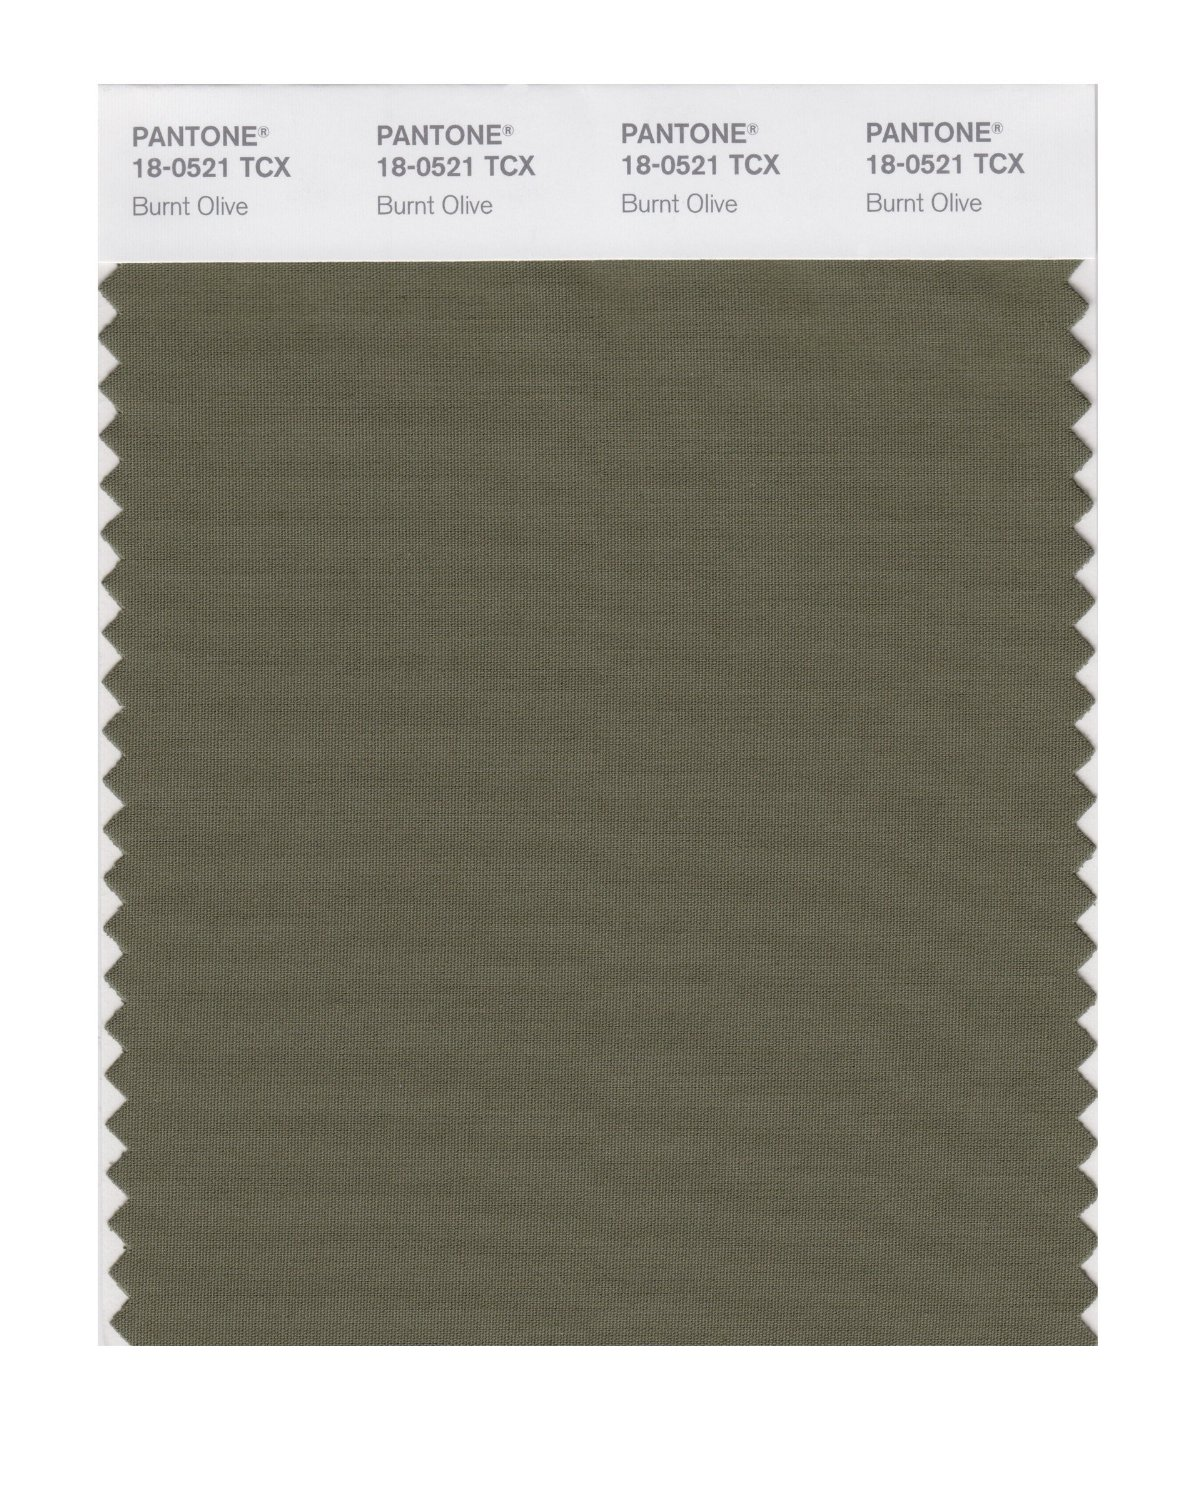 Pantone Smart Swatch 18-0521 Burnt Olive